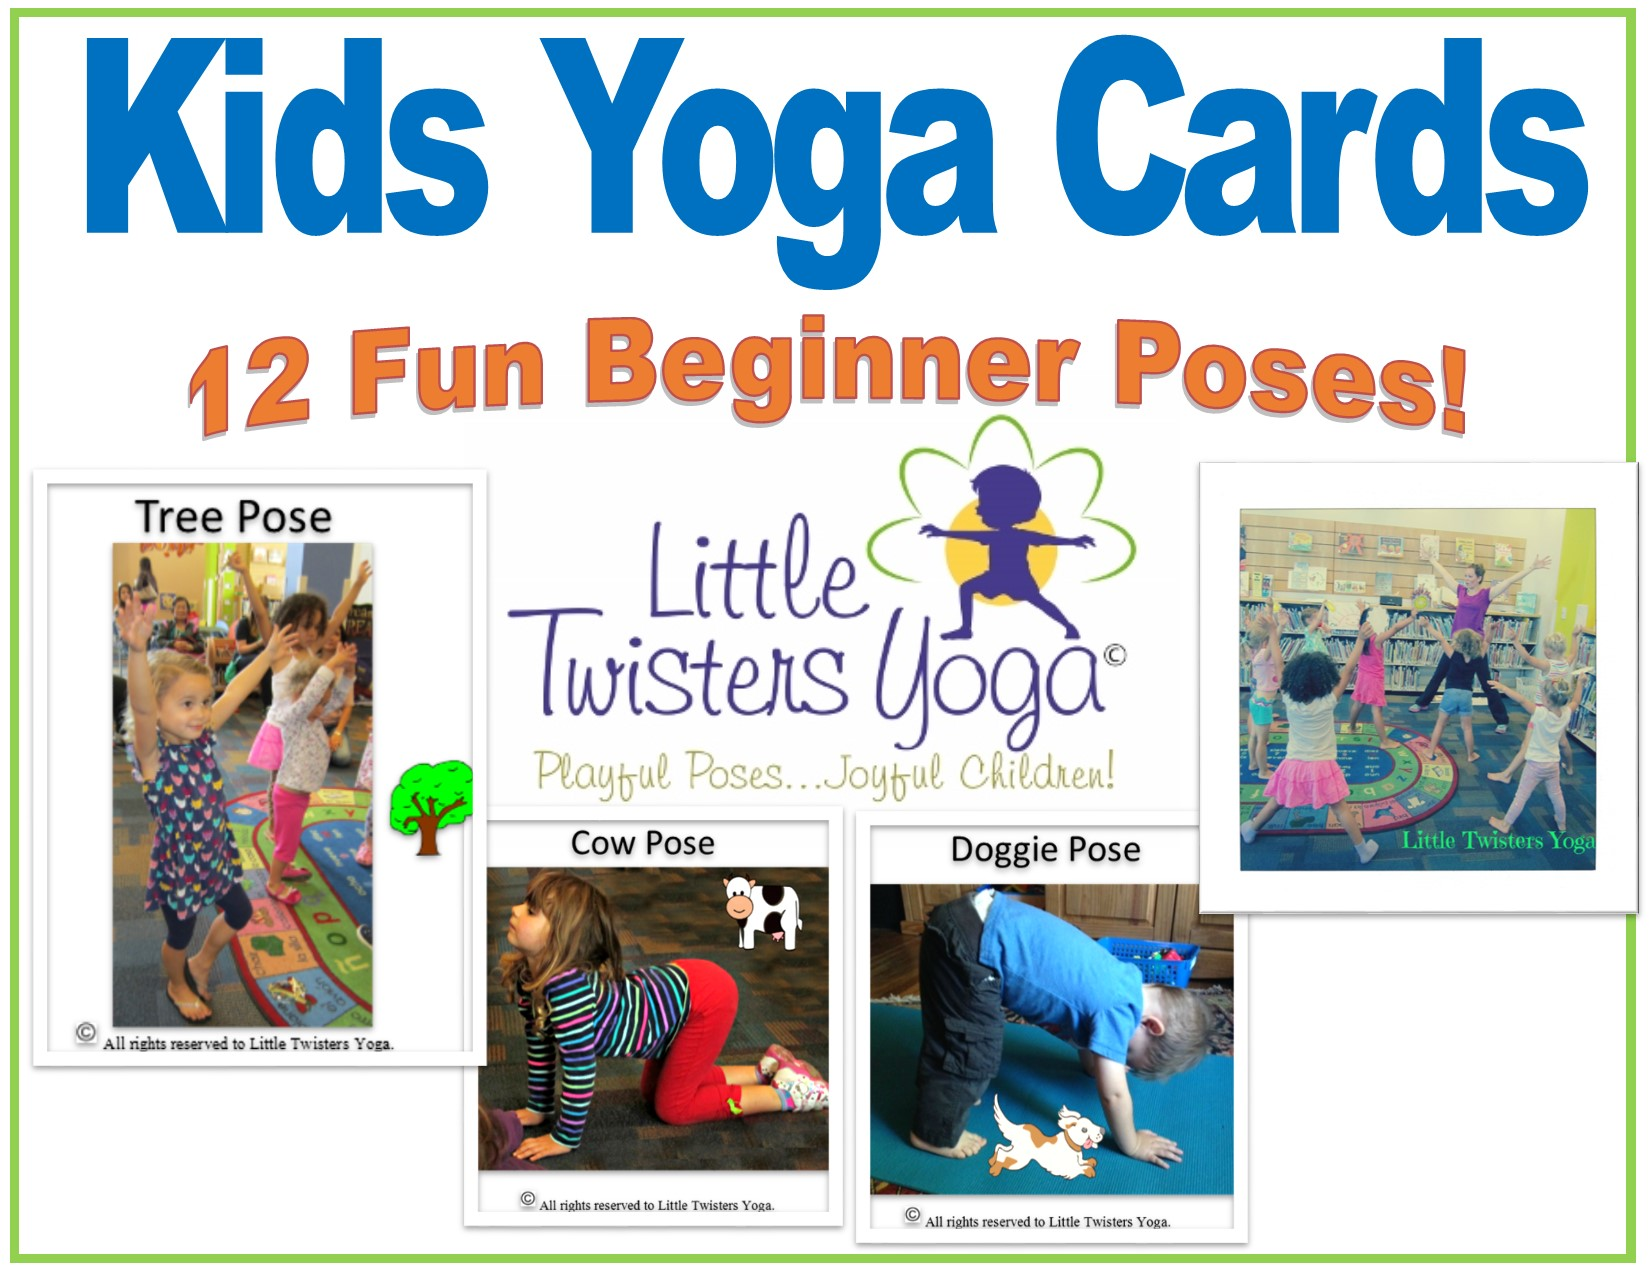 photograph about Printable Yoga Cards called On the internet Shop Small Twisters Yoga Psychological Well being